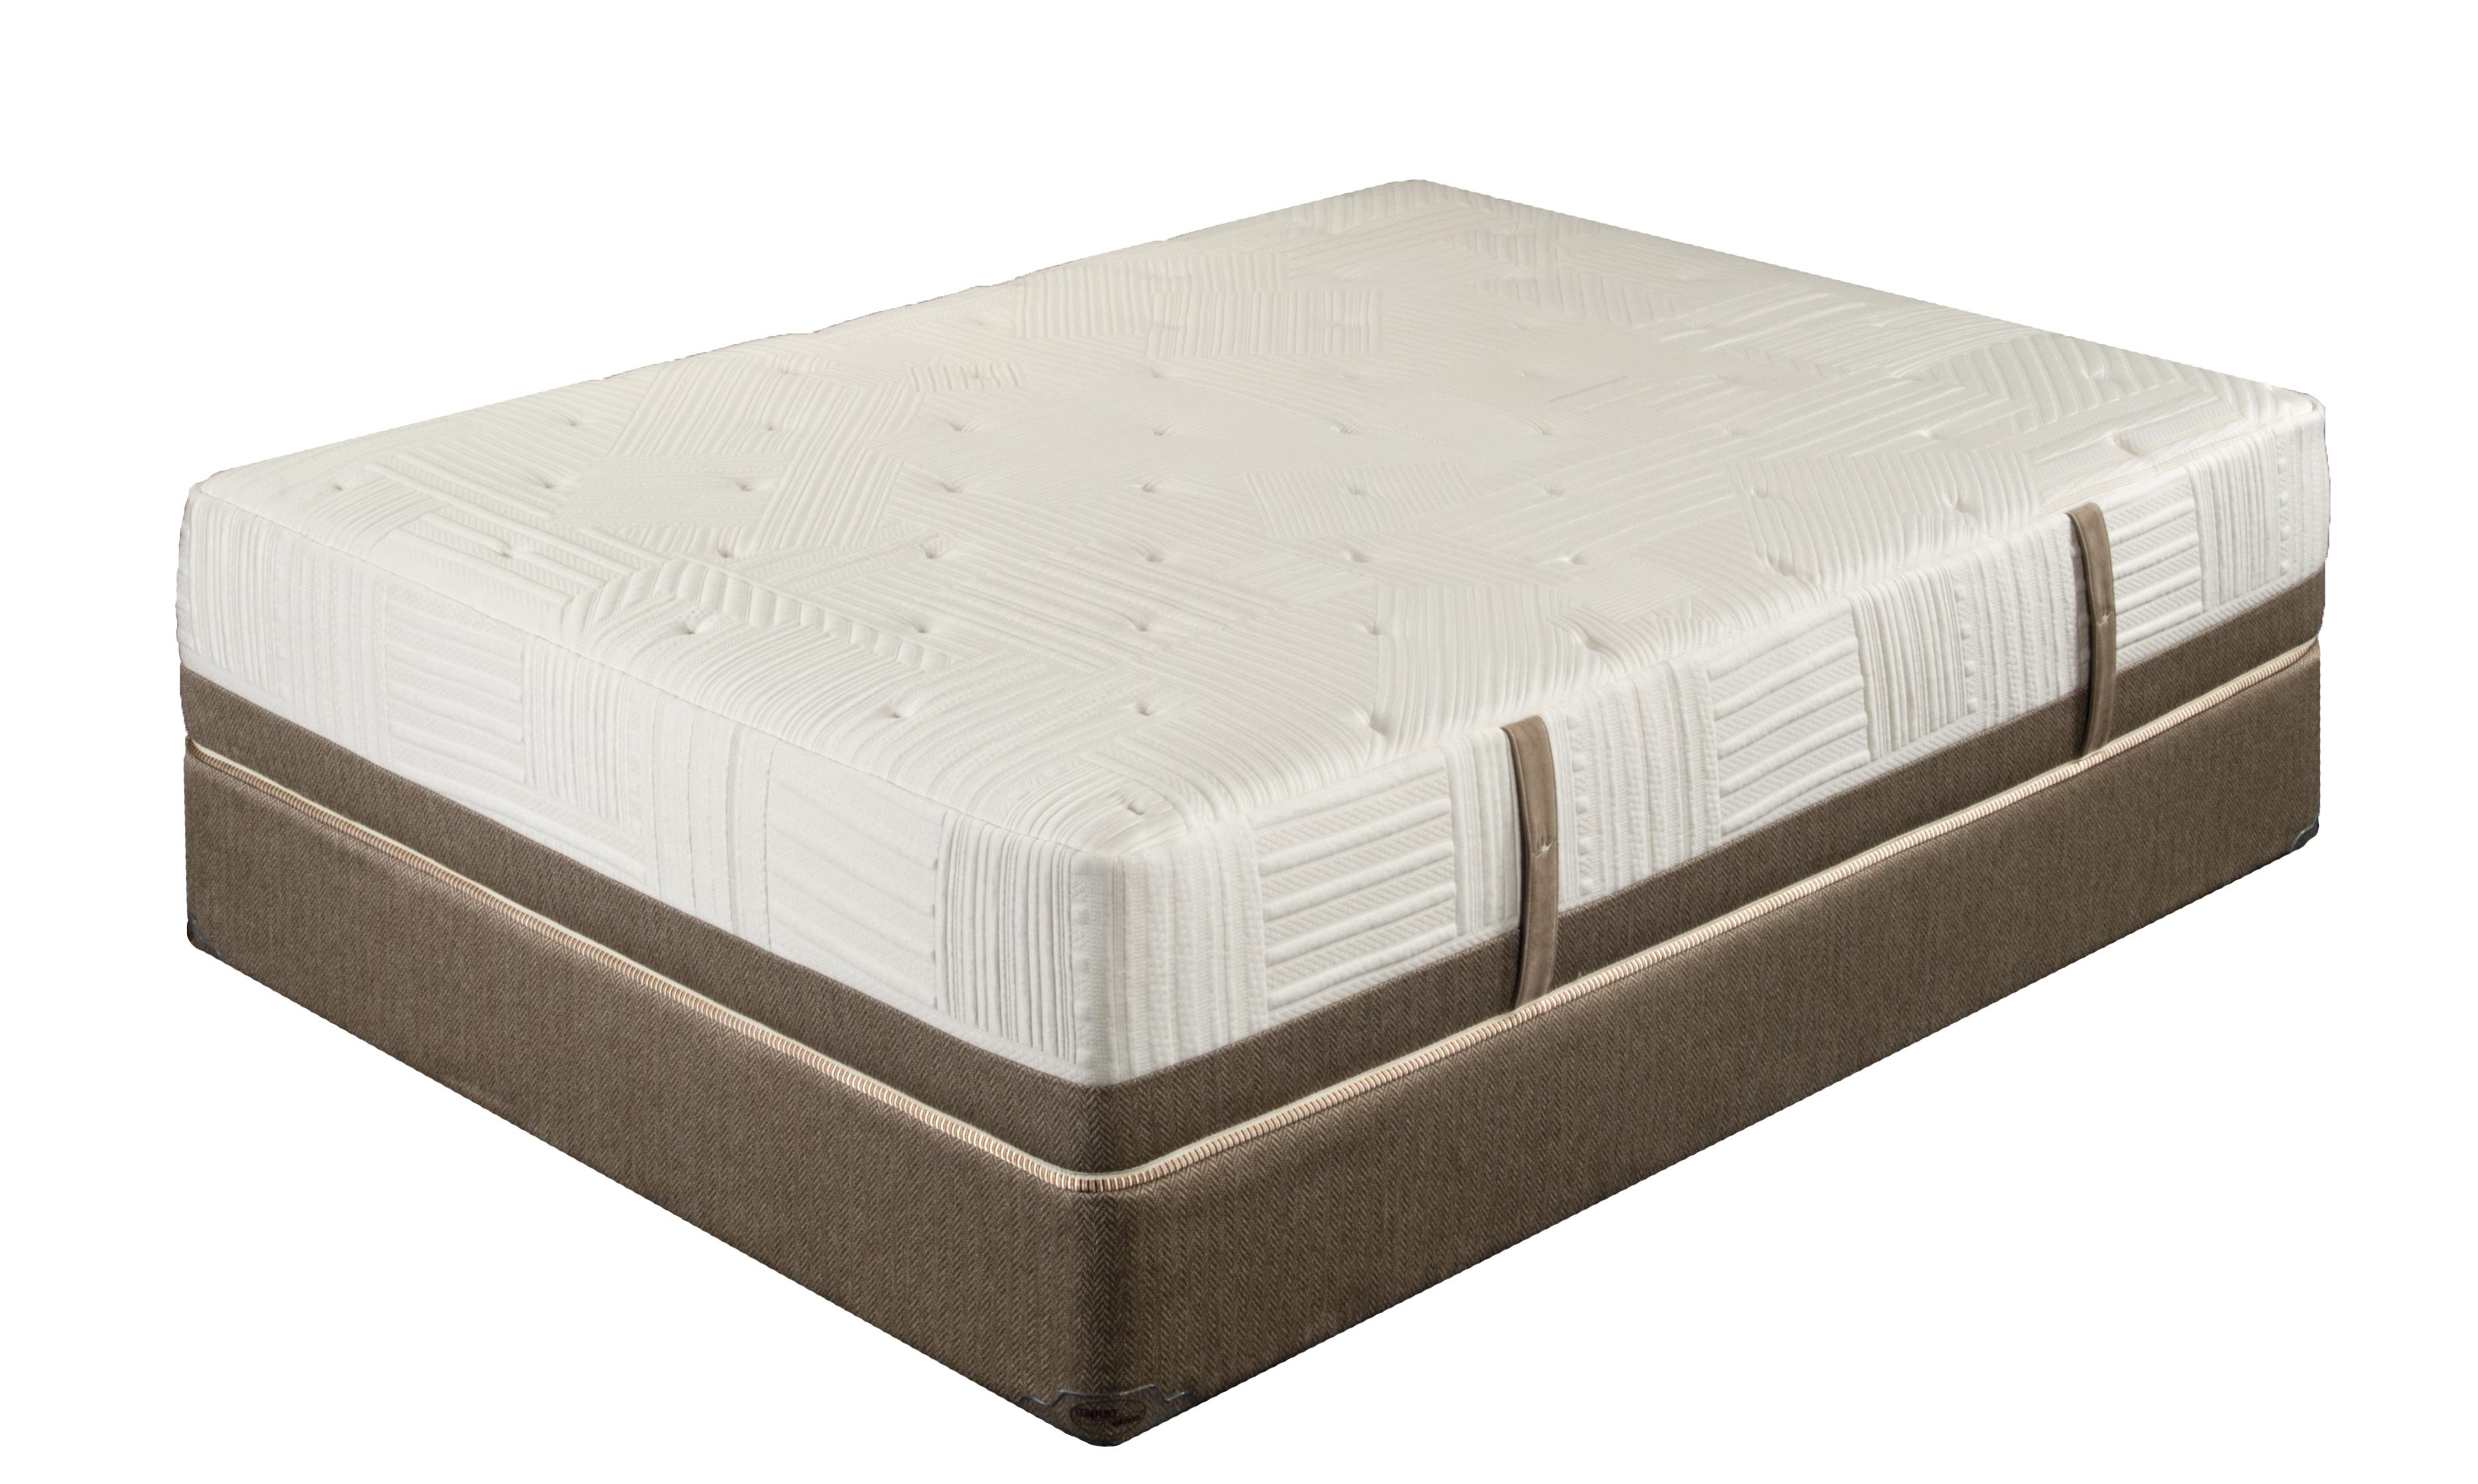 Extended Life 3100 Twin Luxury Firm Mattress by King Koil at Nassau Furniture and Mattress